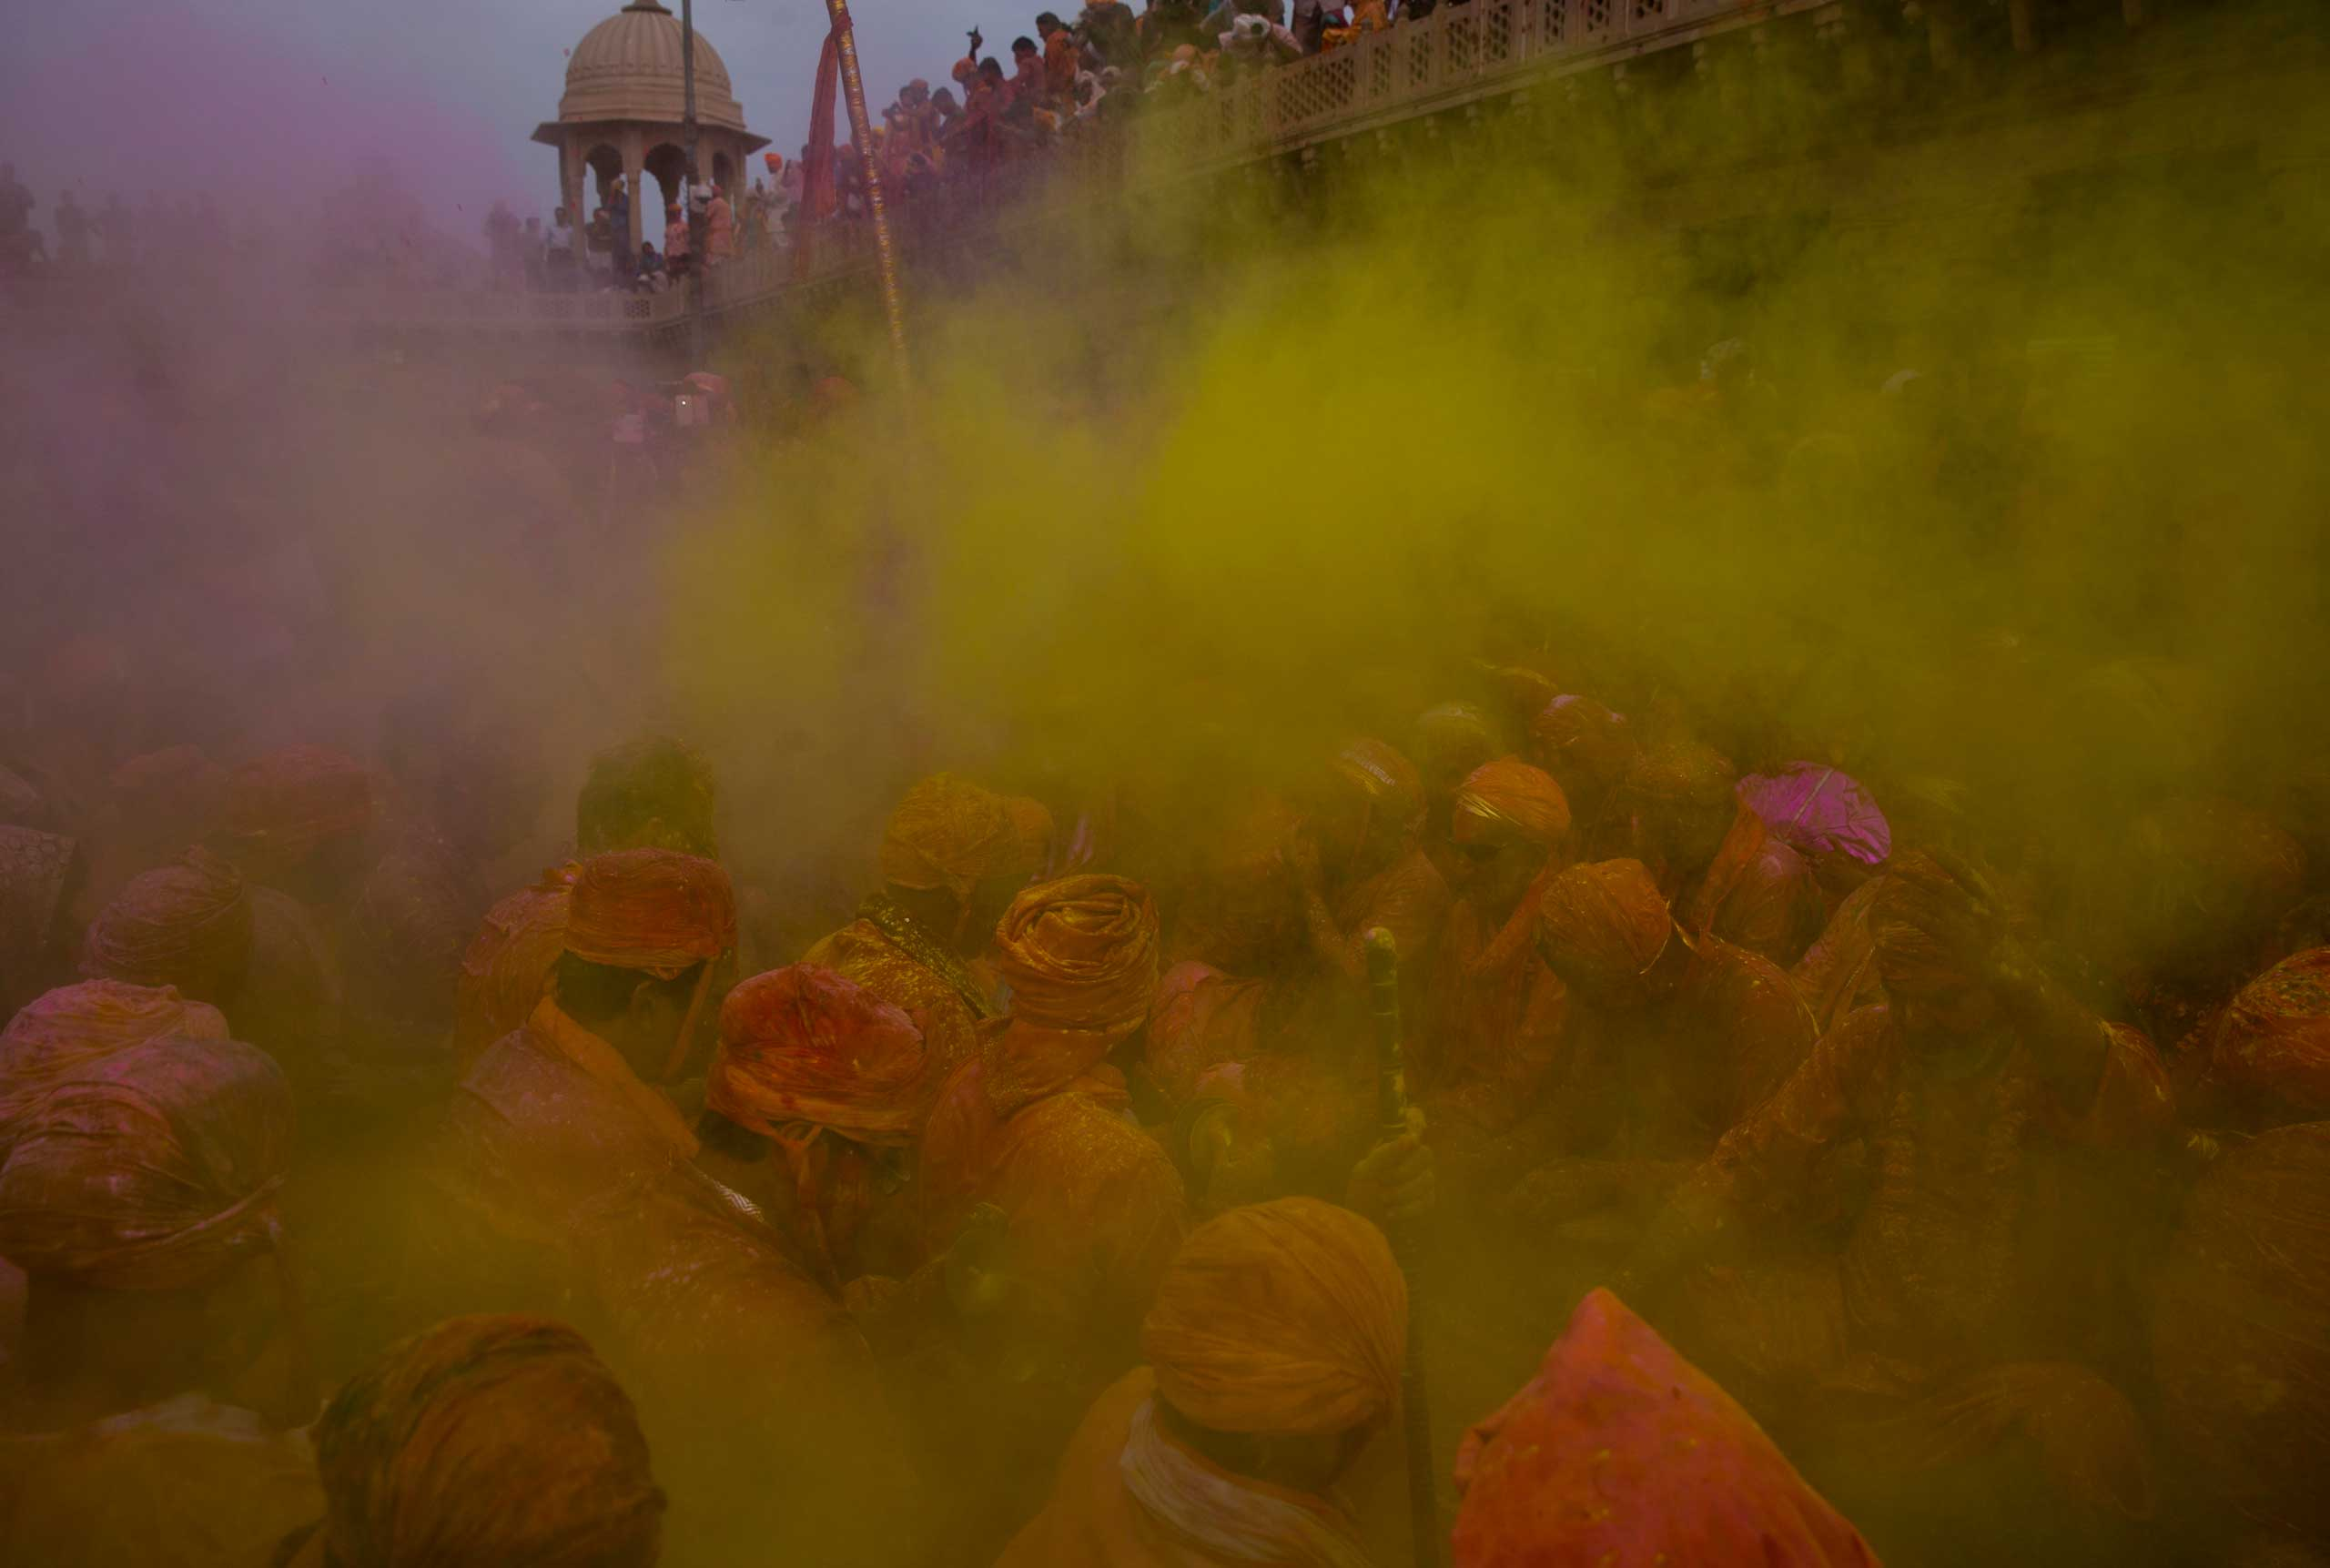 Indian Hindu devotees smeared with colors, sing songs at the Nandagram temple famous for Lord Krishna and his brother Balram, during Lathmar holi festival, in Nandgaon, India, Feb. 28, 2015.